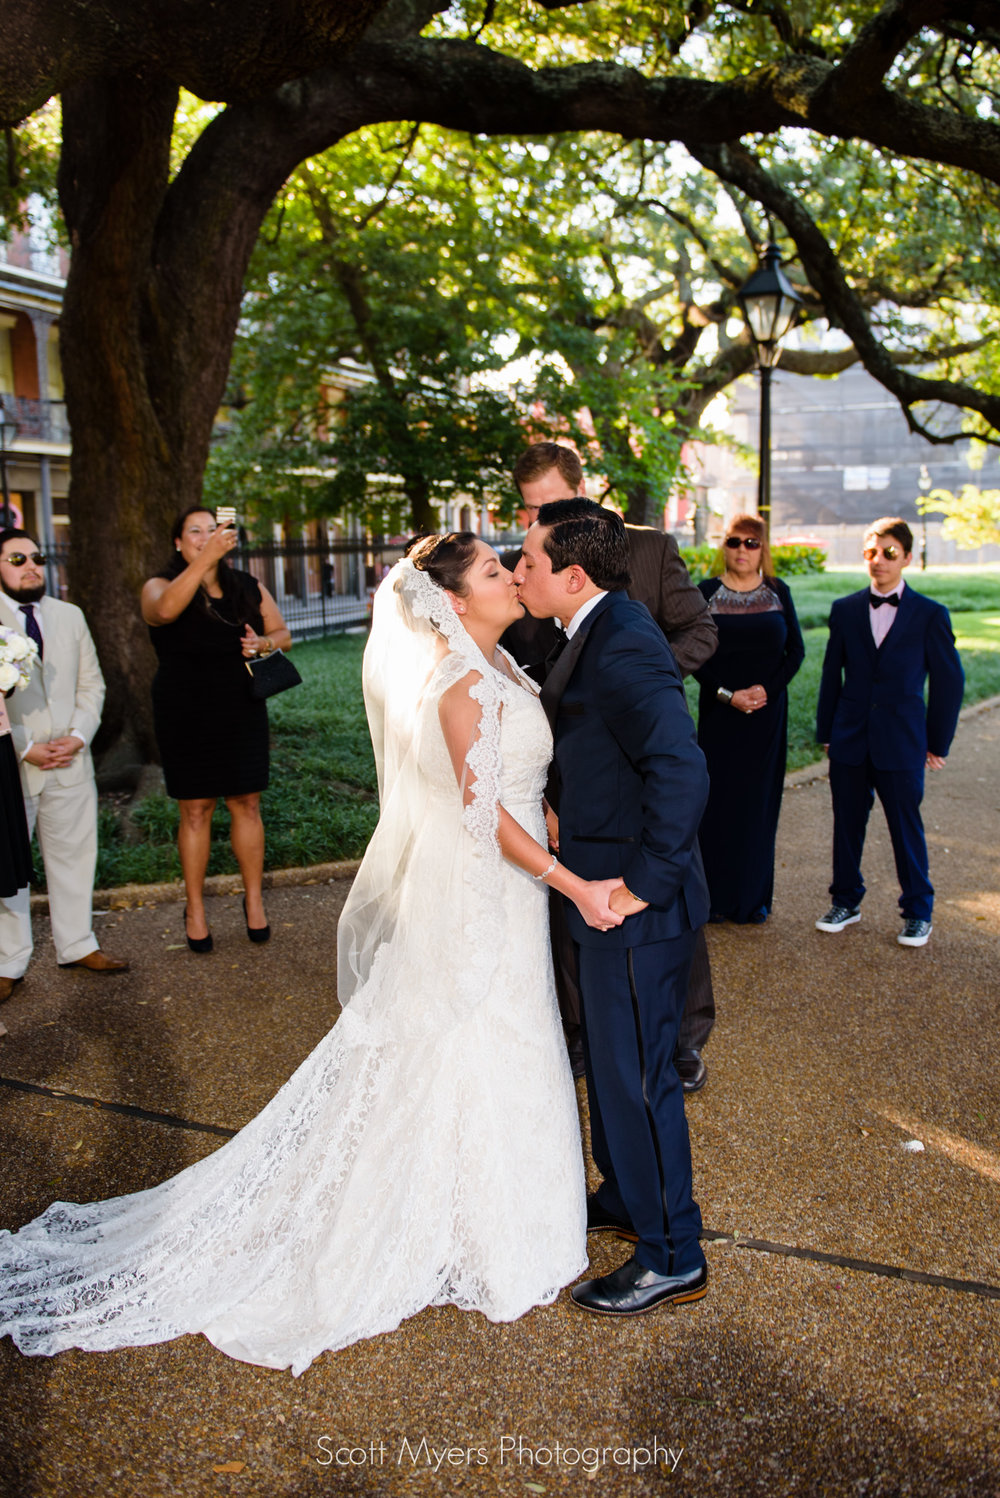 Scott_Myers_Wedding_New_Orleans_026.jpg